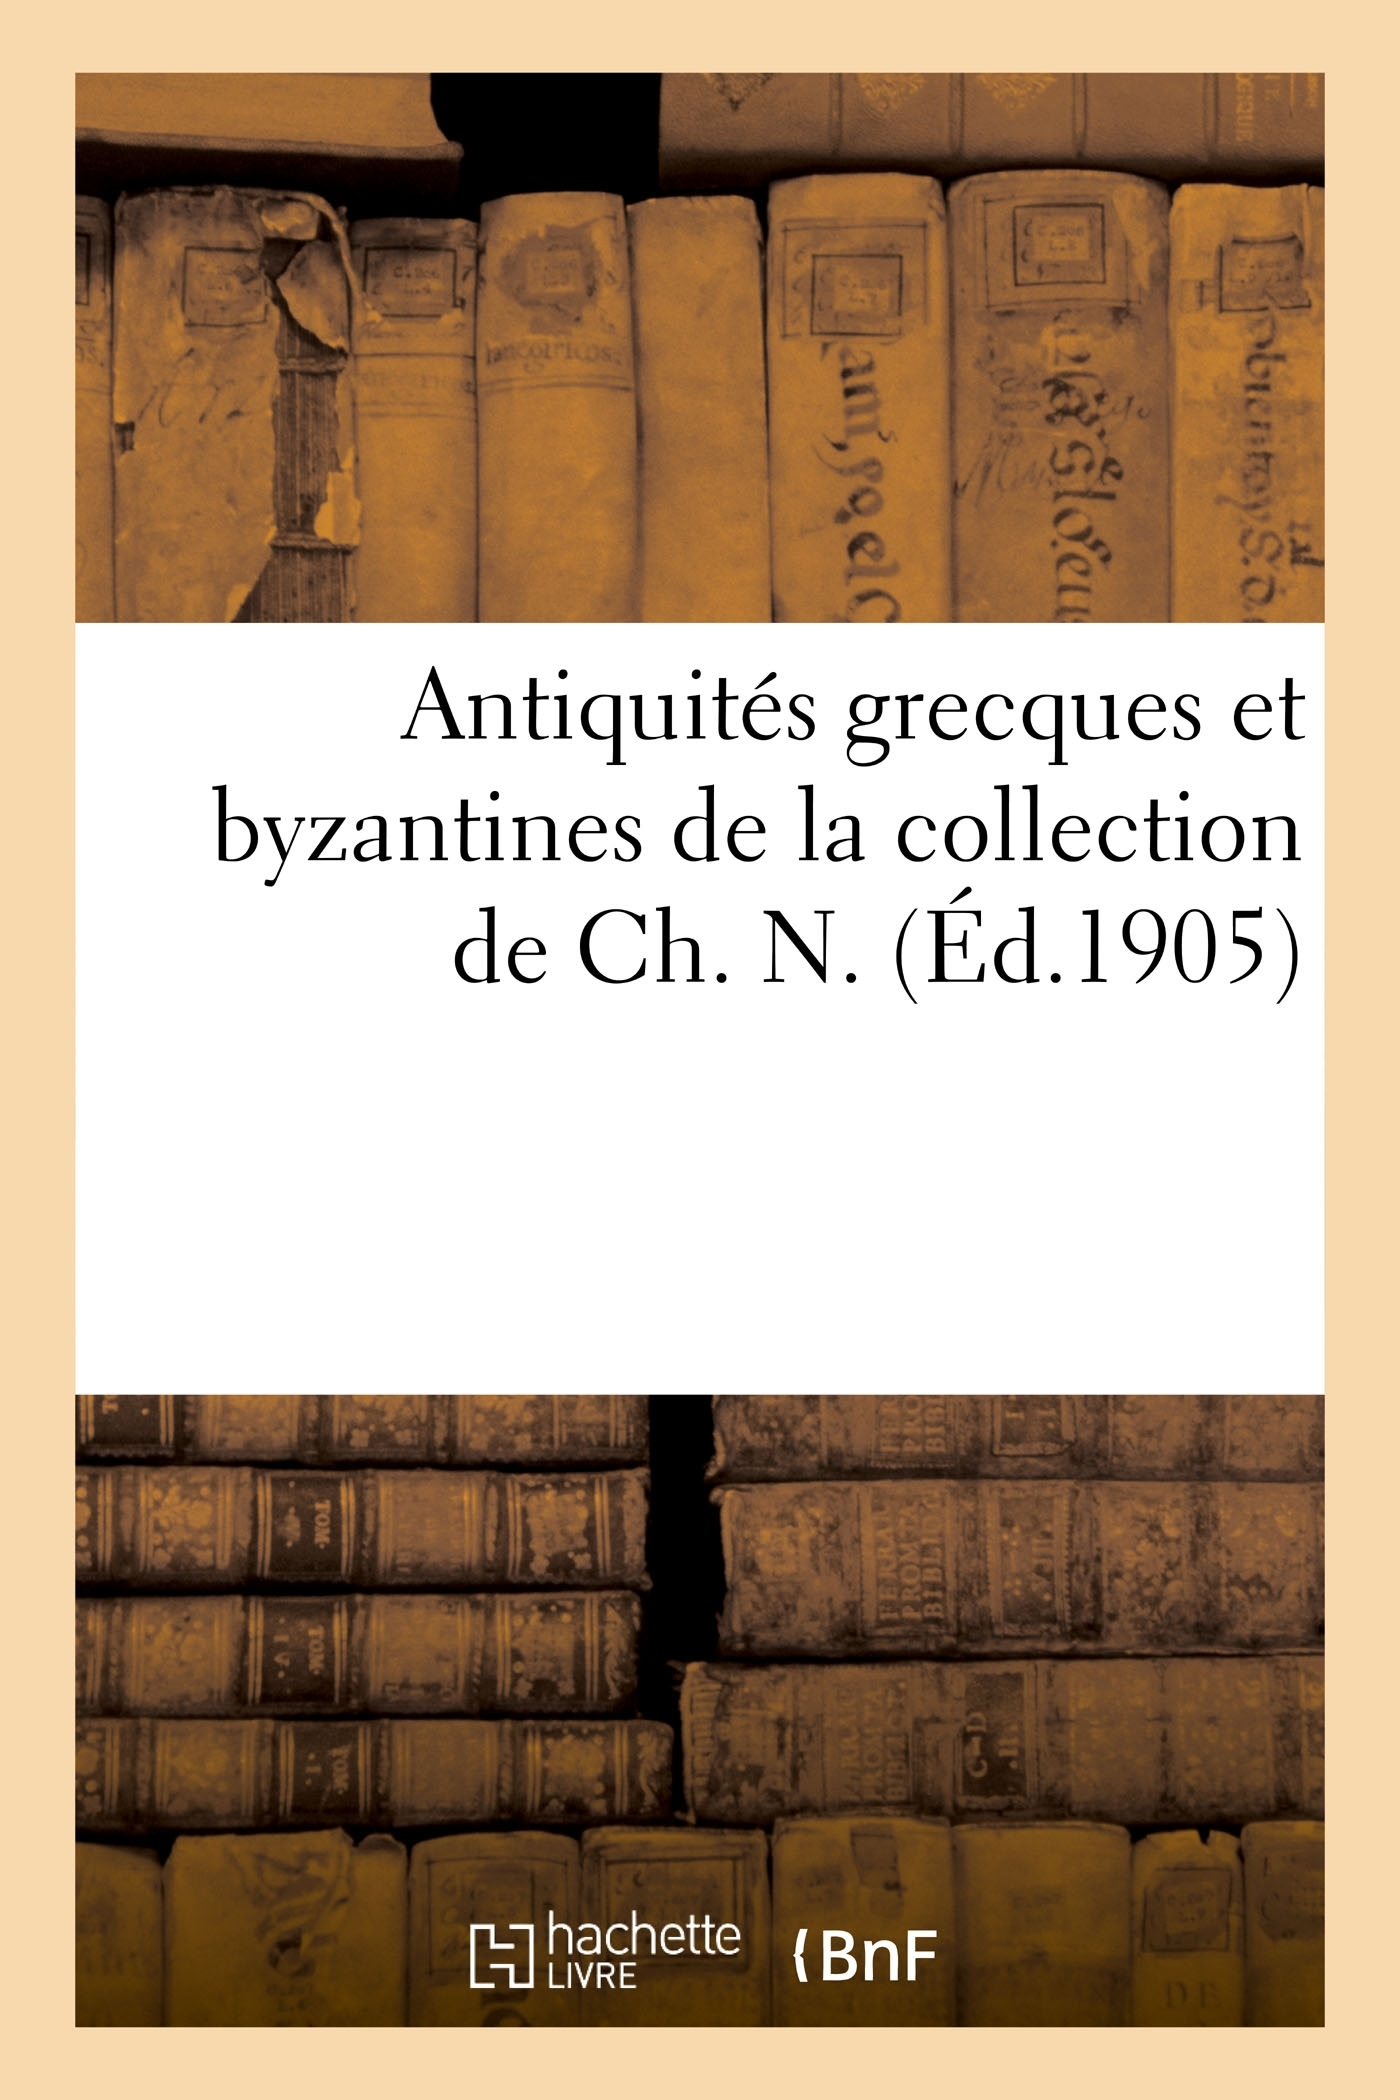 ANTIQUITES GRECQUES ET BYZANTINES DE LA COLLECTION DE CH. N.